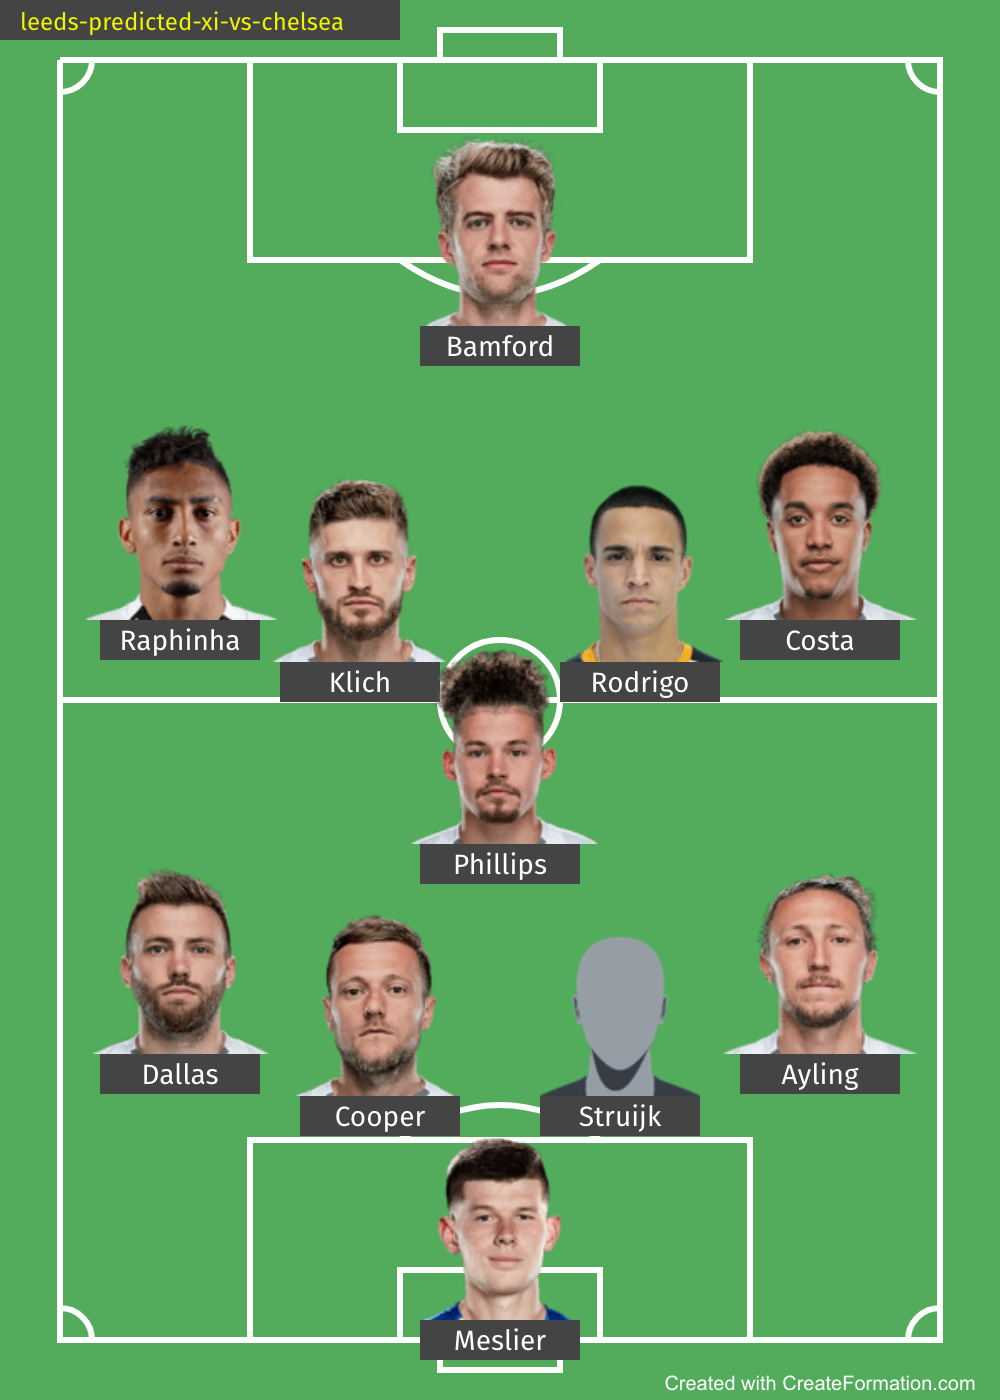 leeds-predicted-xi-vs-chelsea